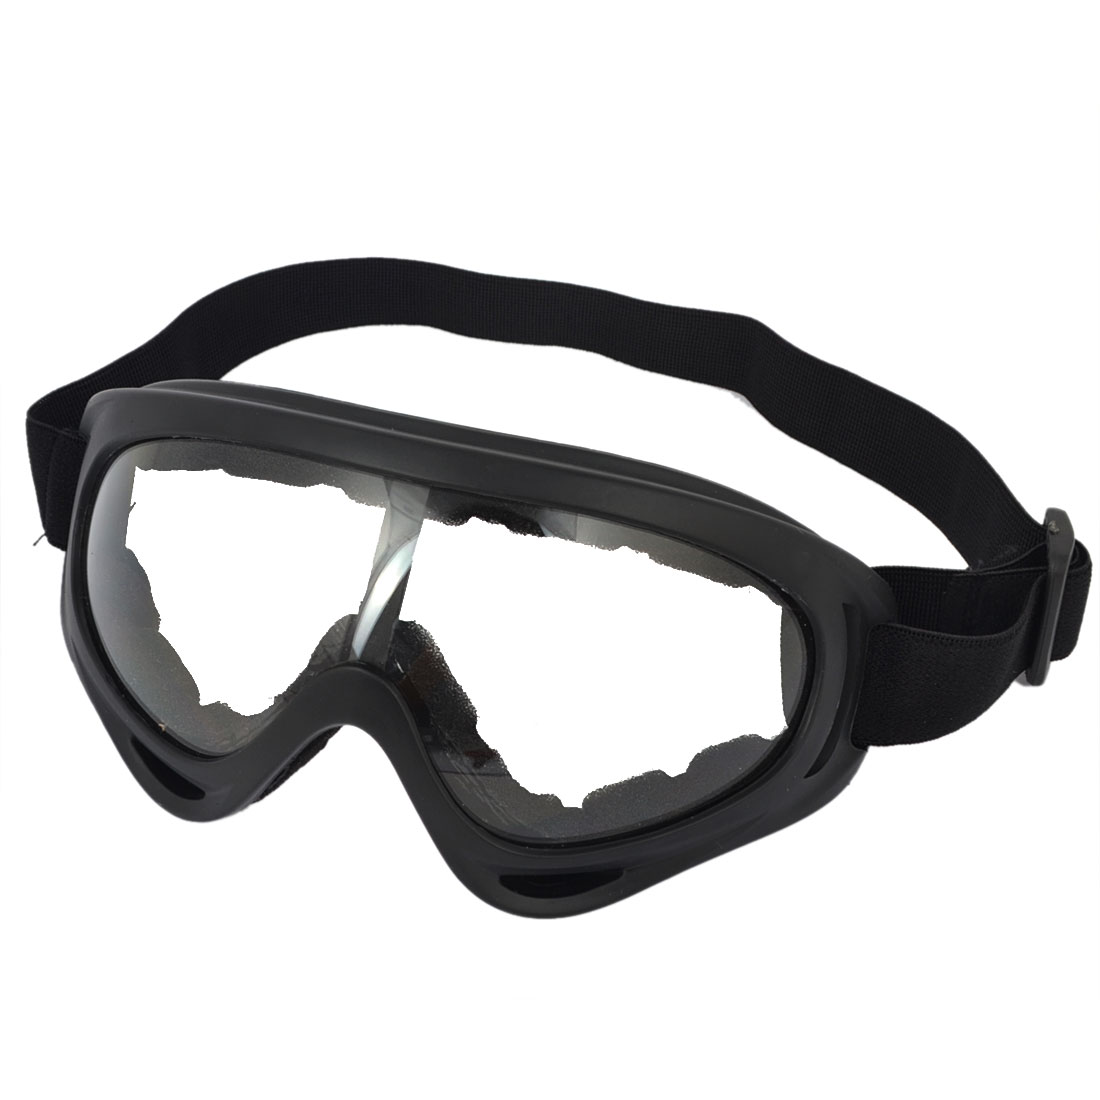 Black Cycling Sponge Padded Eyewear Windproof Ski Goggles Sunglasses